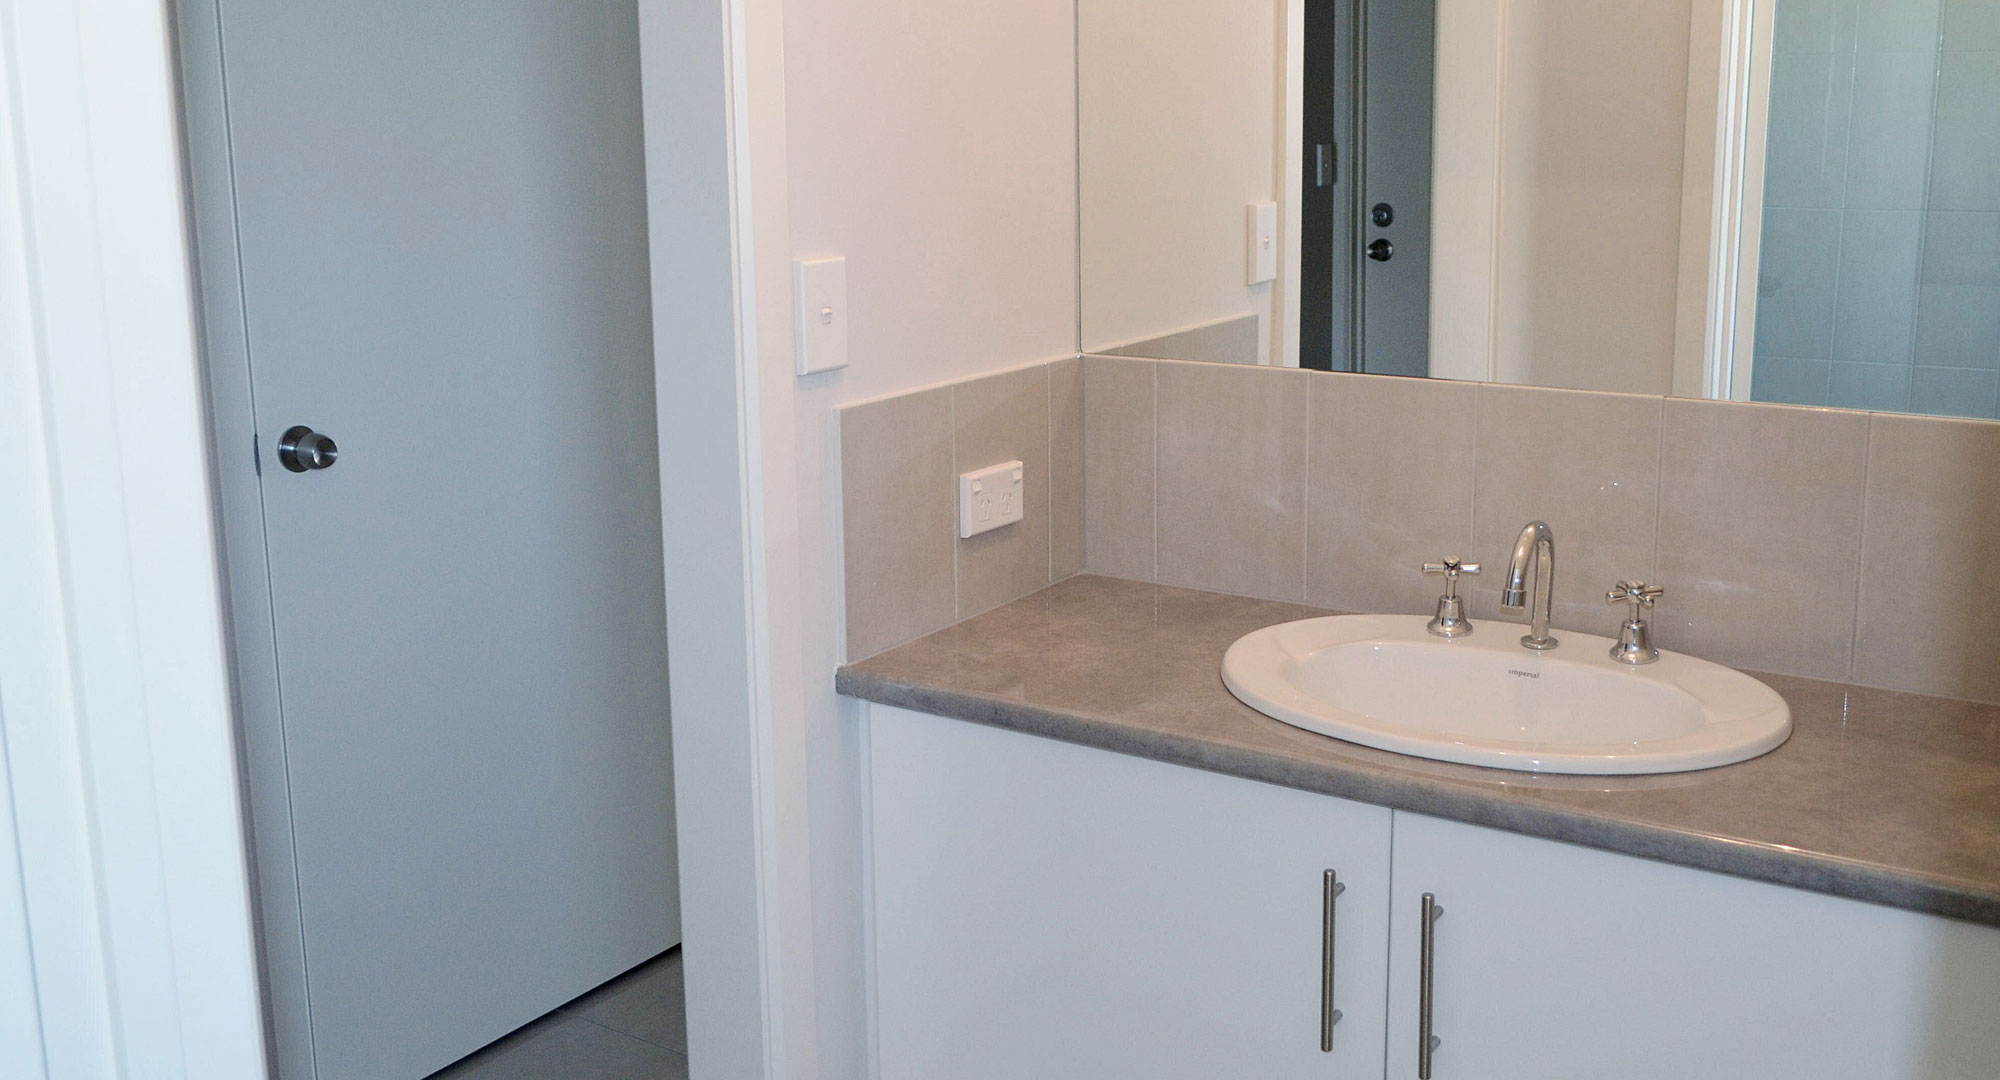 Summerplace Homes - Transportable Homes Bathroom Detail